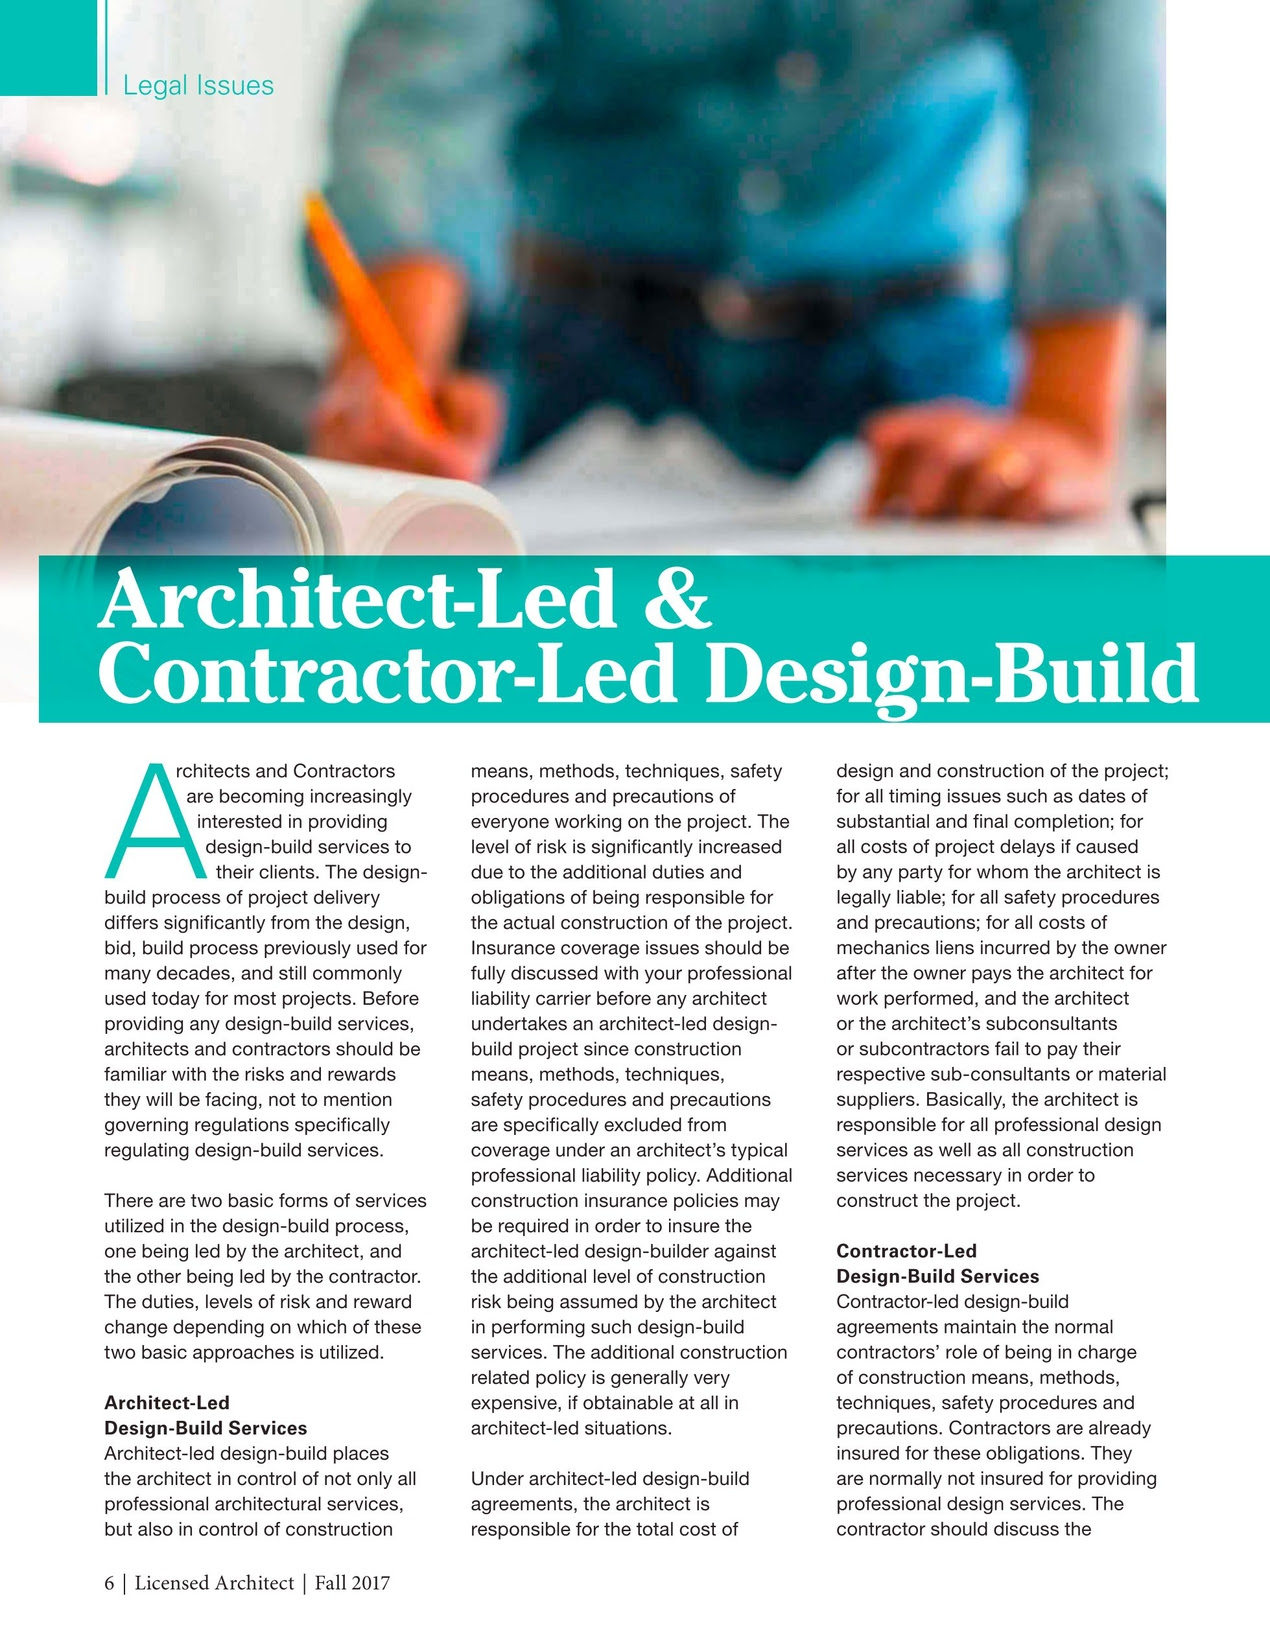 Licensed Architect Fall 2017